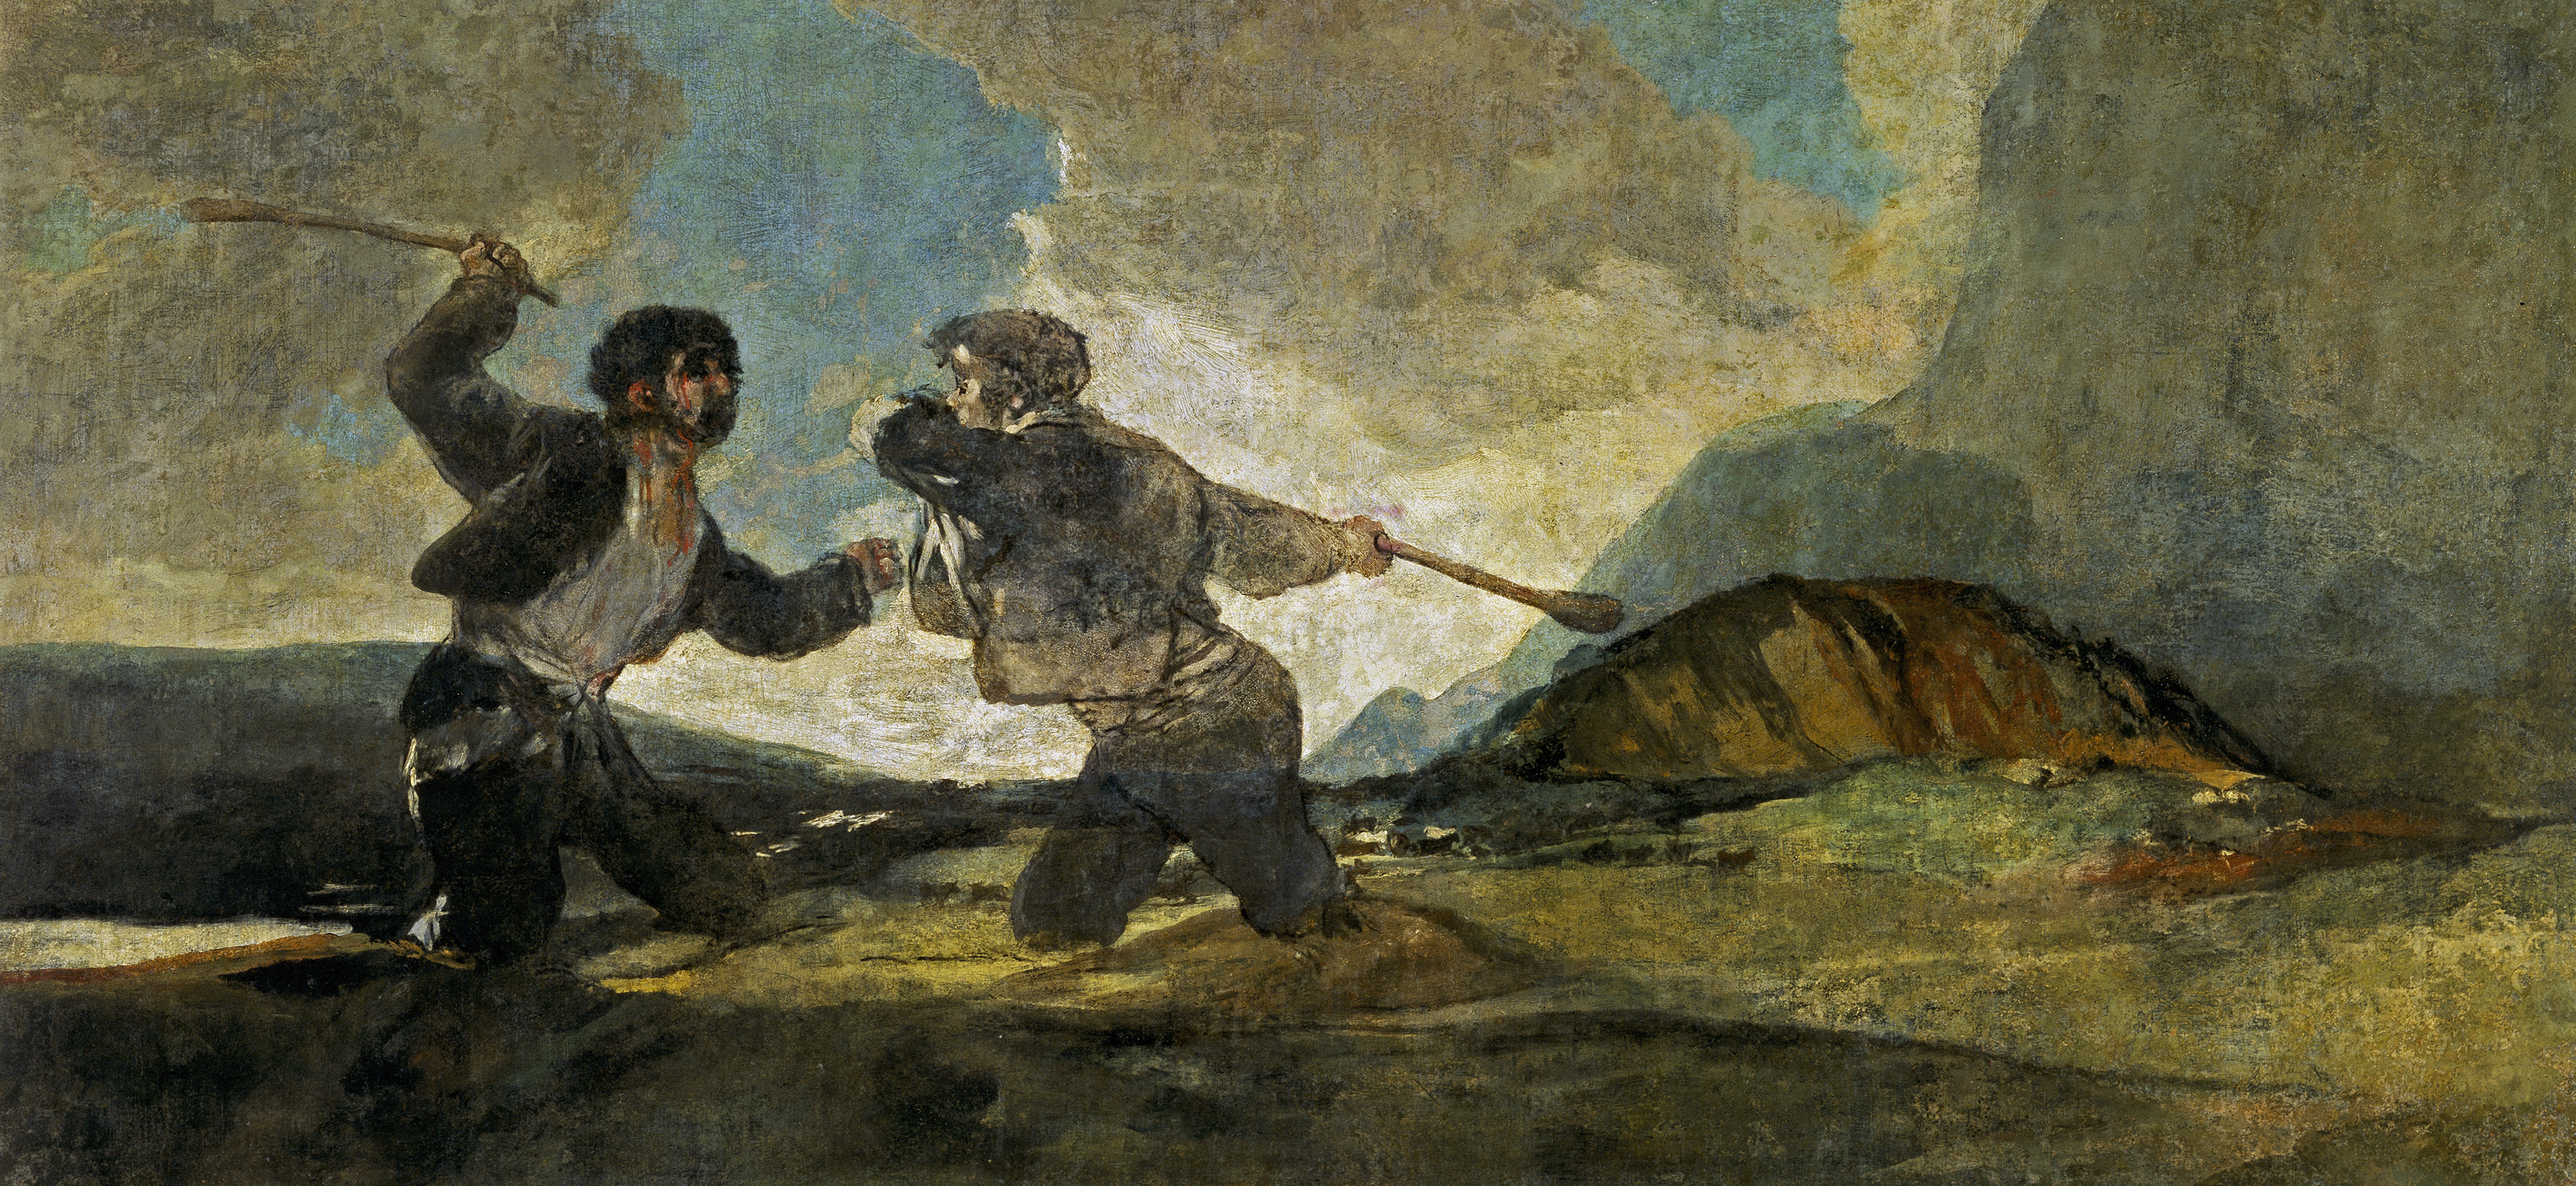 https://upload.wikimedia.org/wikipedia/commons/8/8c/Francisco_de_Goya_y_Lucientes_-_Duelo_a_garrotazos.jpg